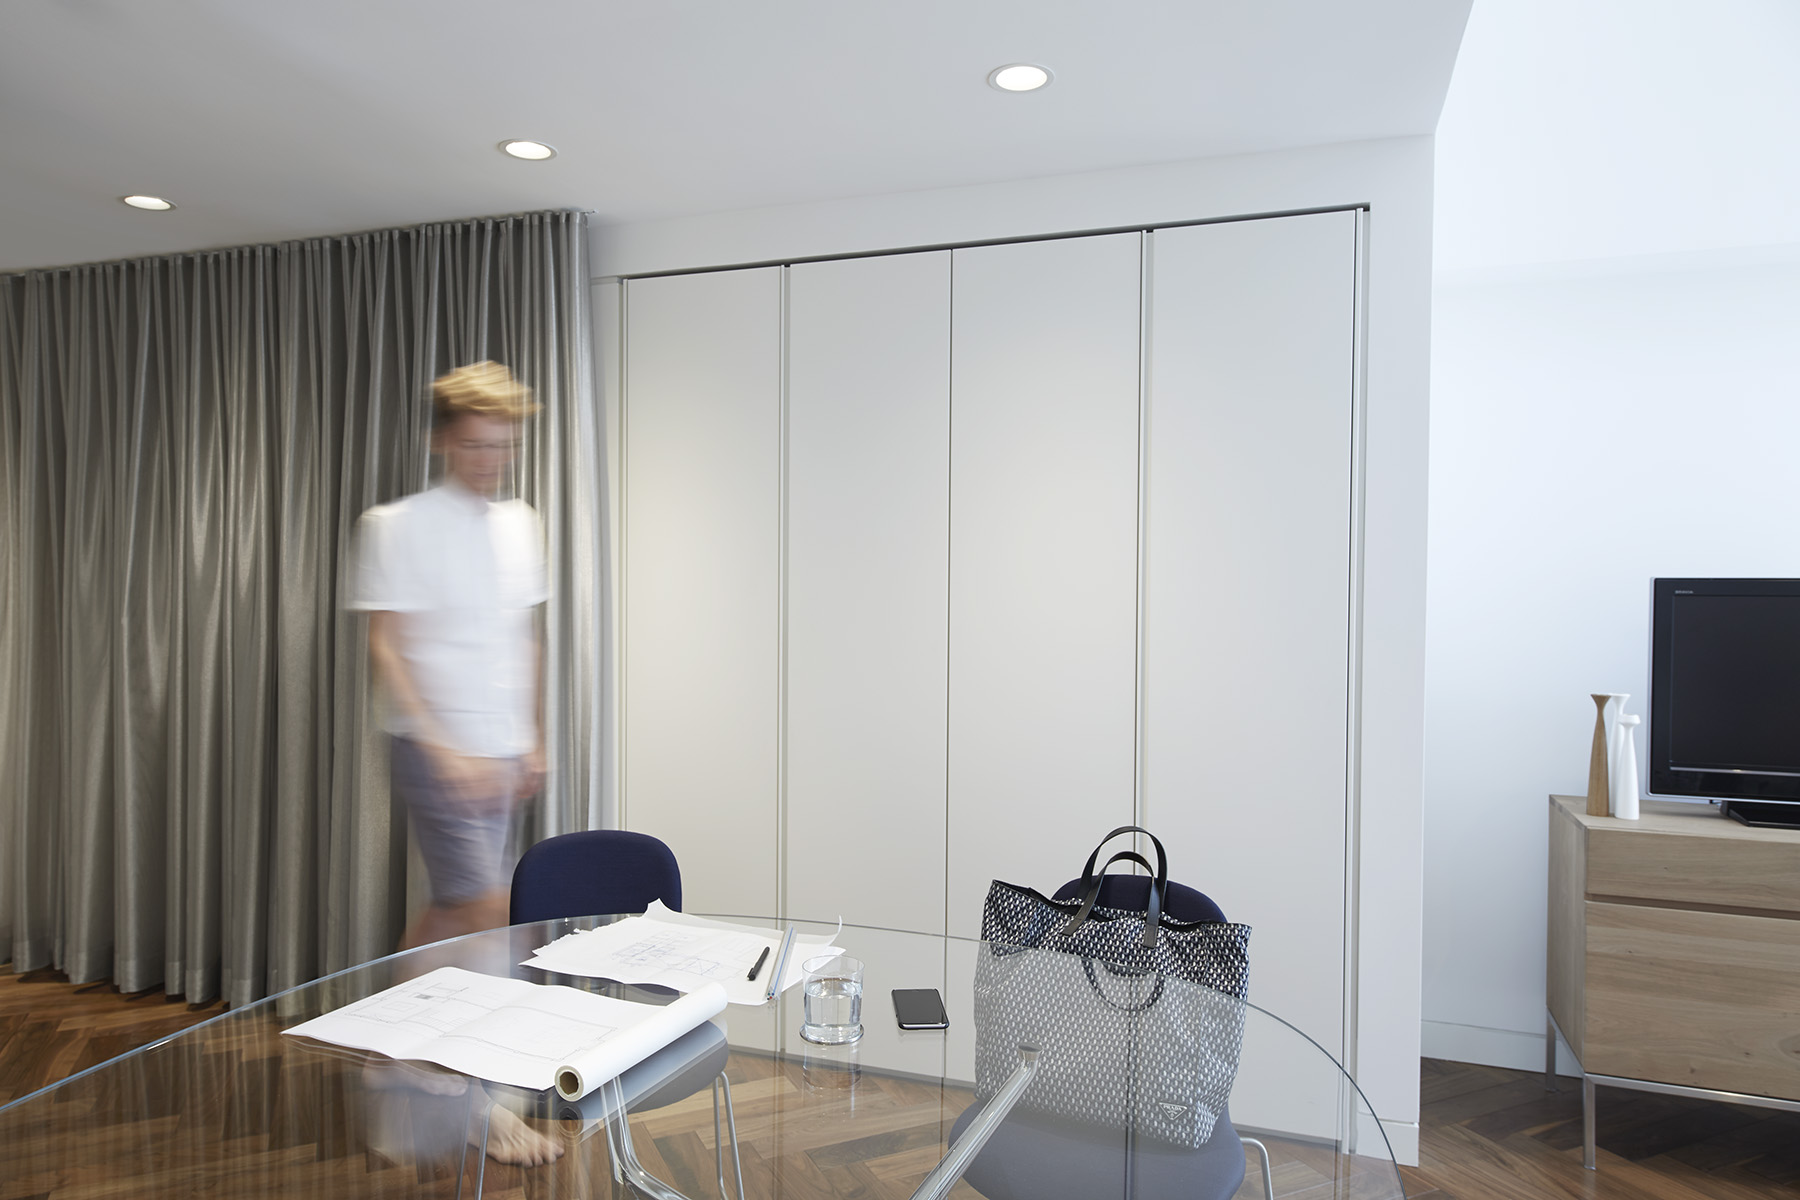 STADT Architecture, Gramercy Apartment, Kitchen, Work Space, Cappellini, Poliform, STADT, nyc architects, ny apartment renovation